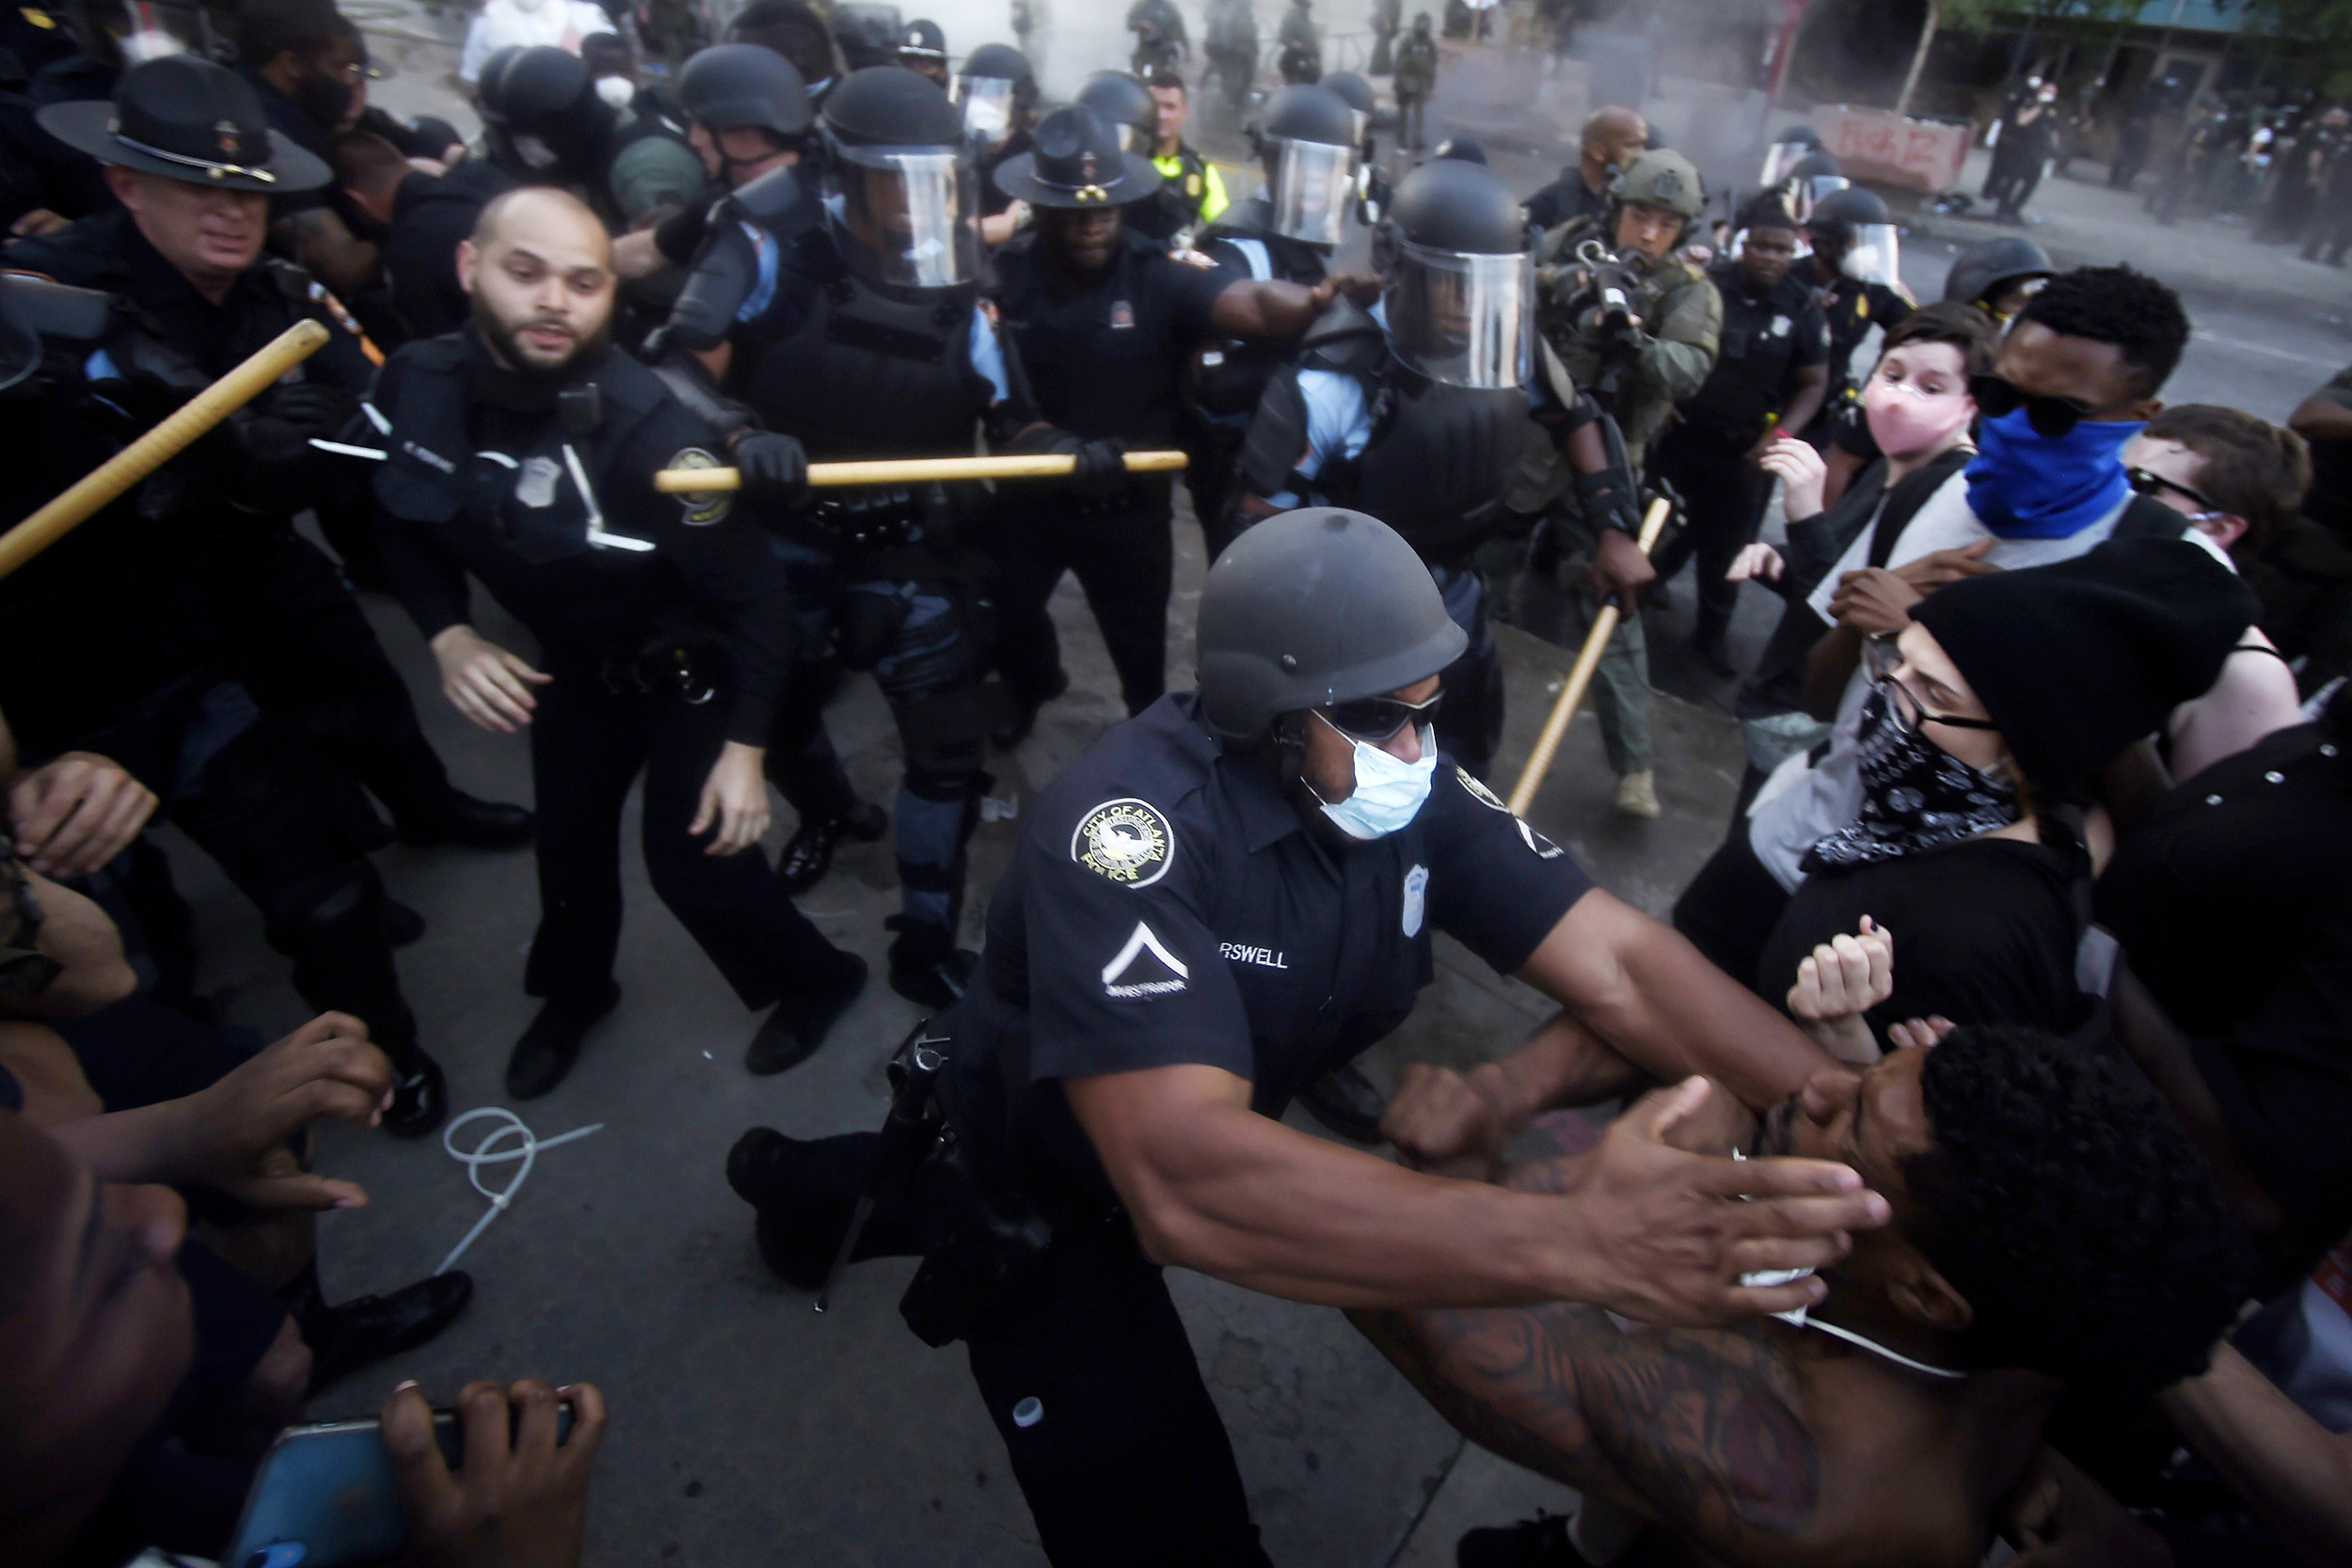 Police officers and protesters clash near CNN center in Atlanta, Georgia, on Friday, May 29.